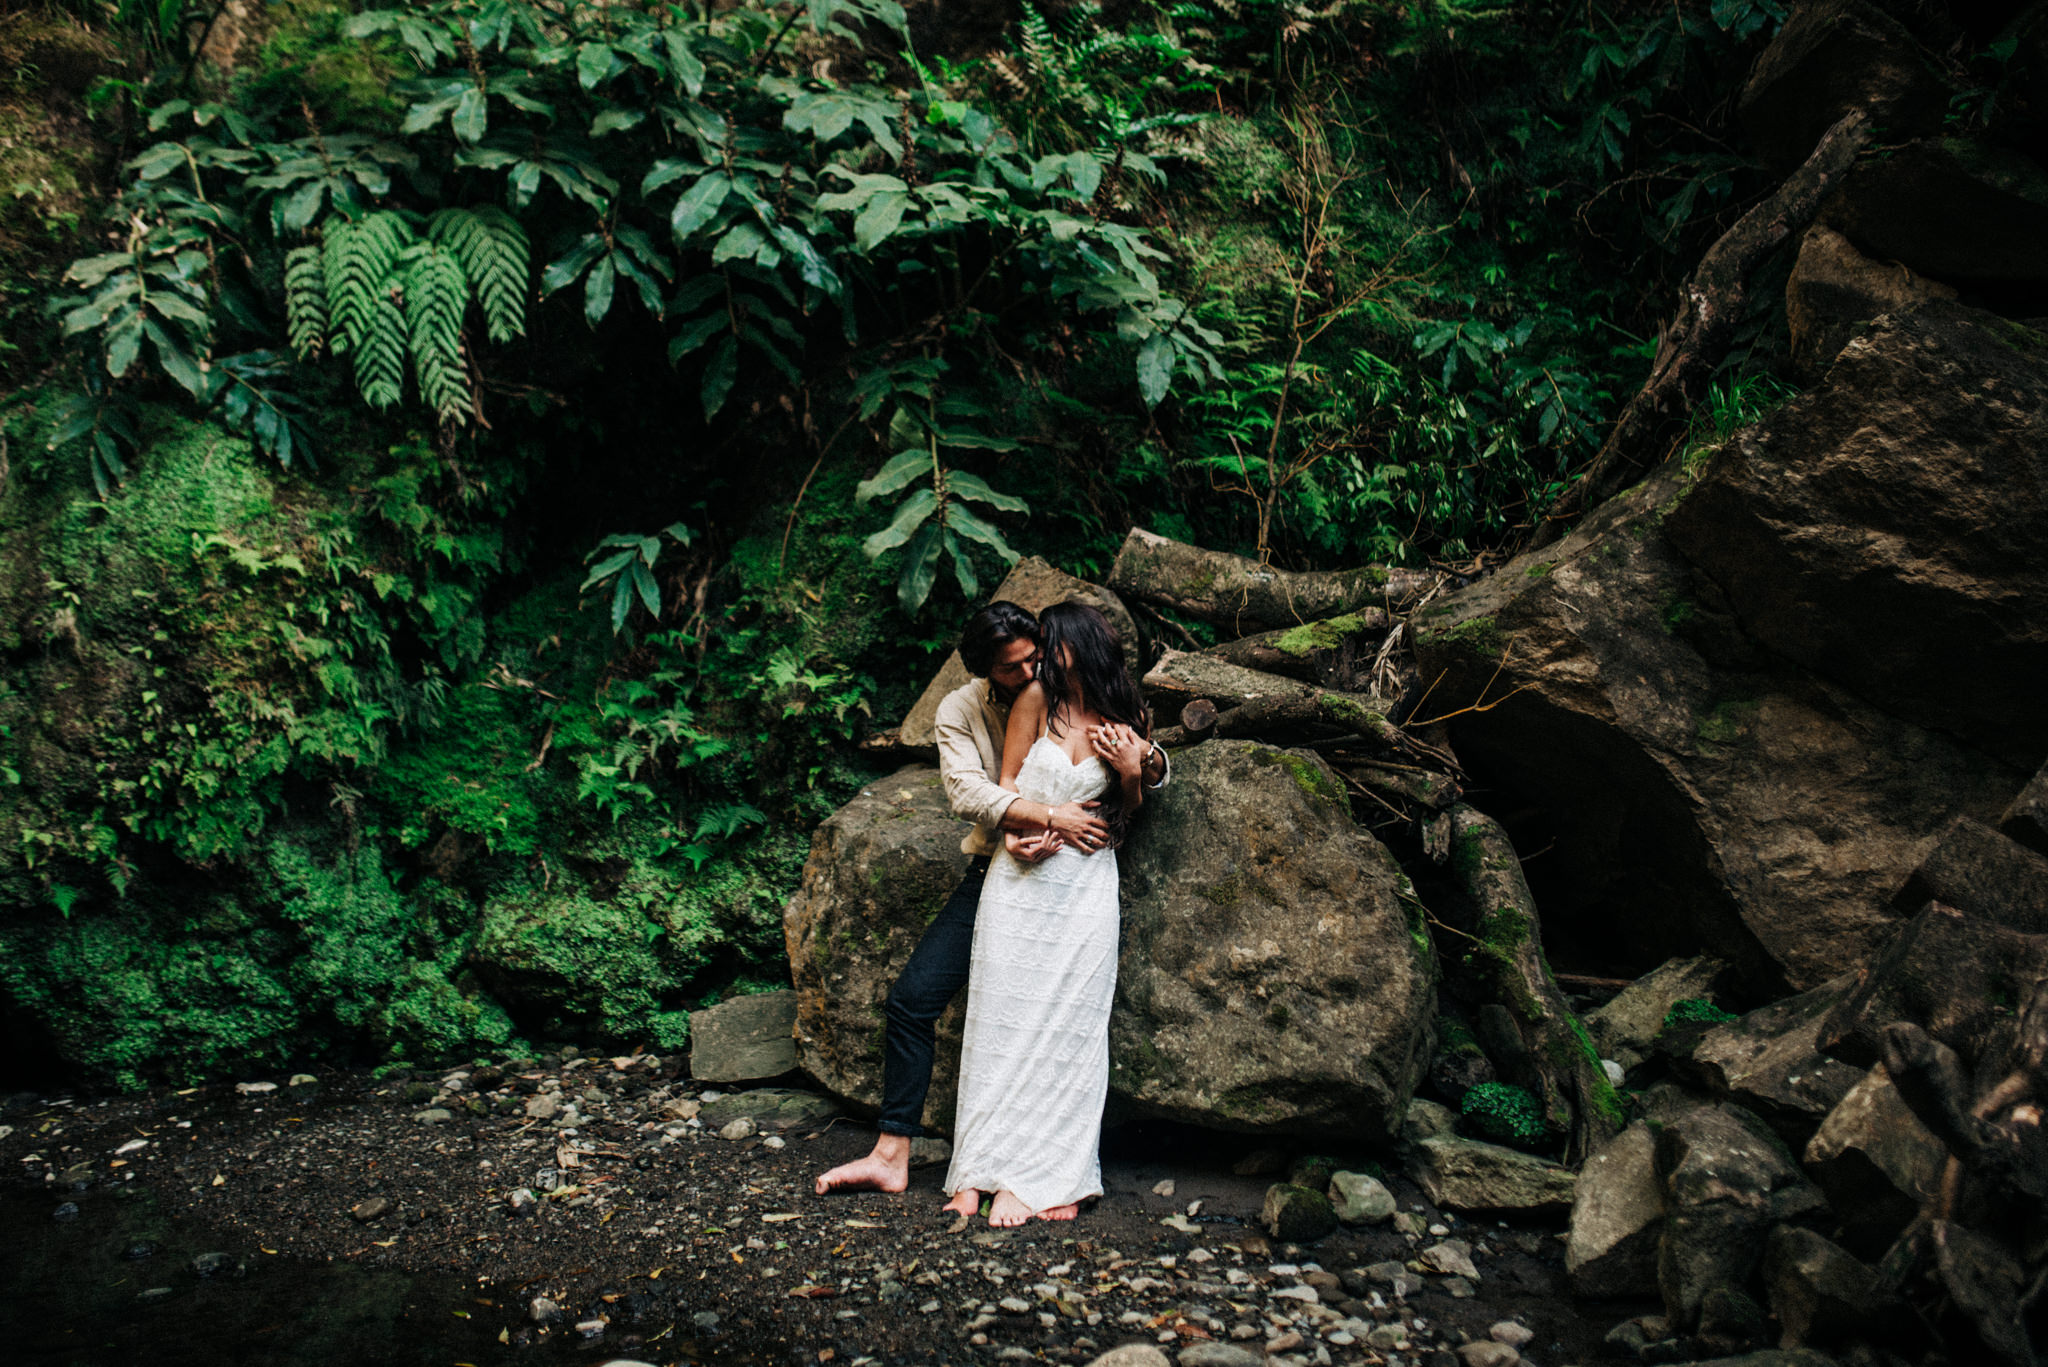 twyla jones photography - portugal azores waterfall couples engagement elopement -26.jpg